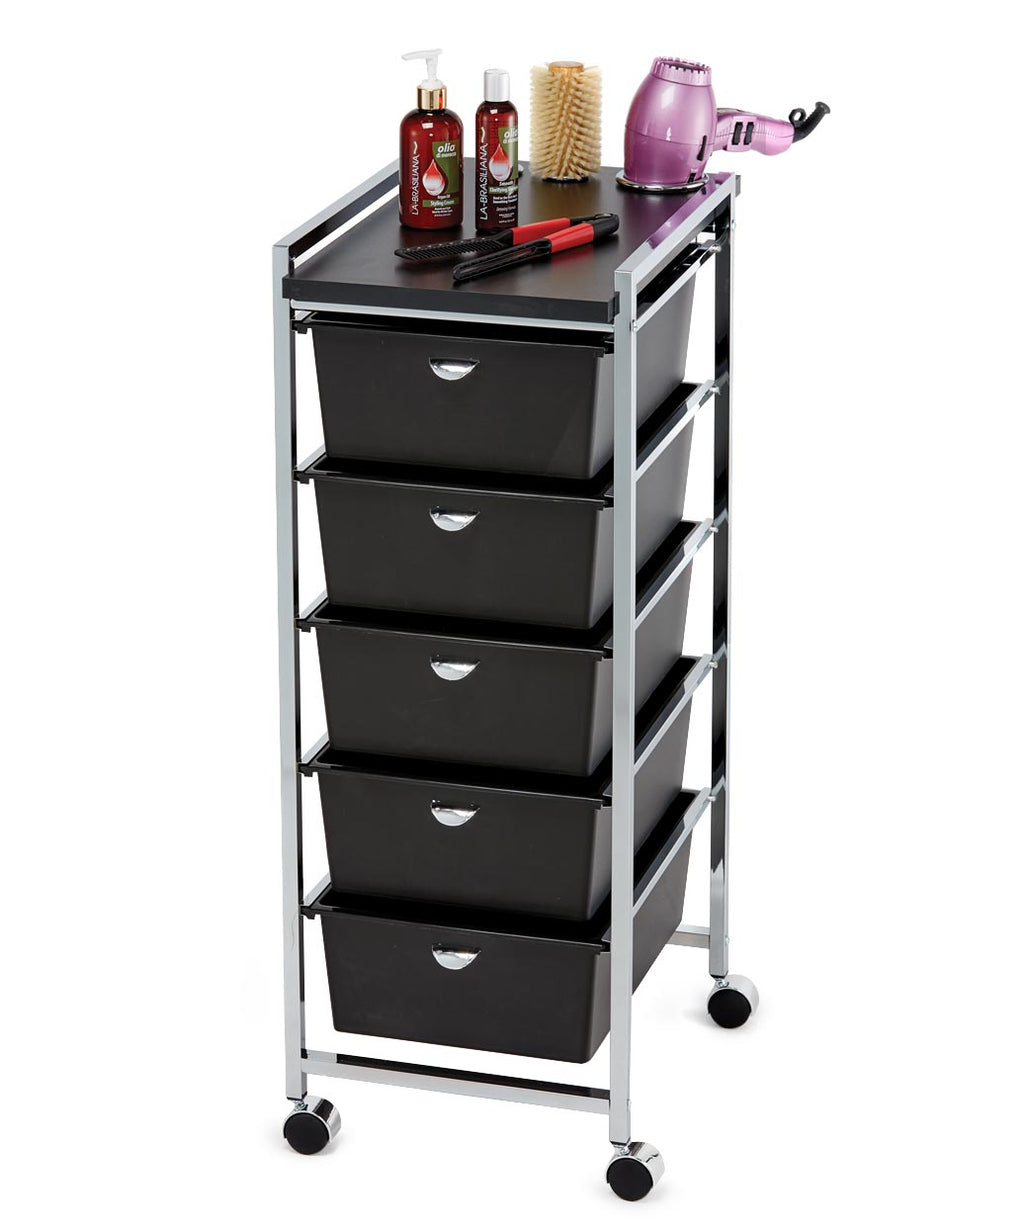 Pibbs D29 Professional Utility Cart Styling Station